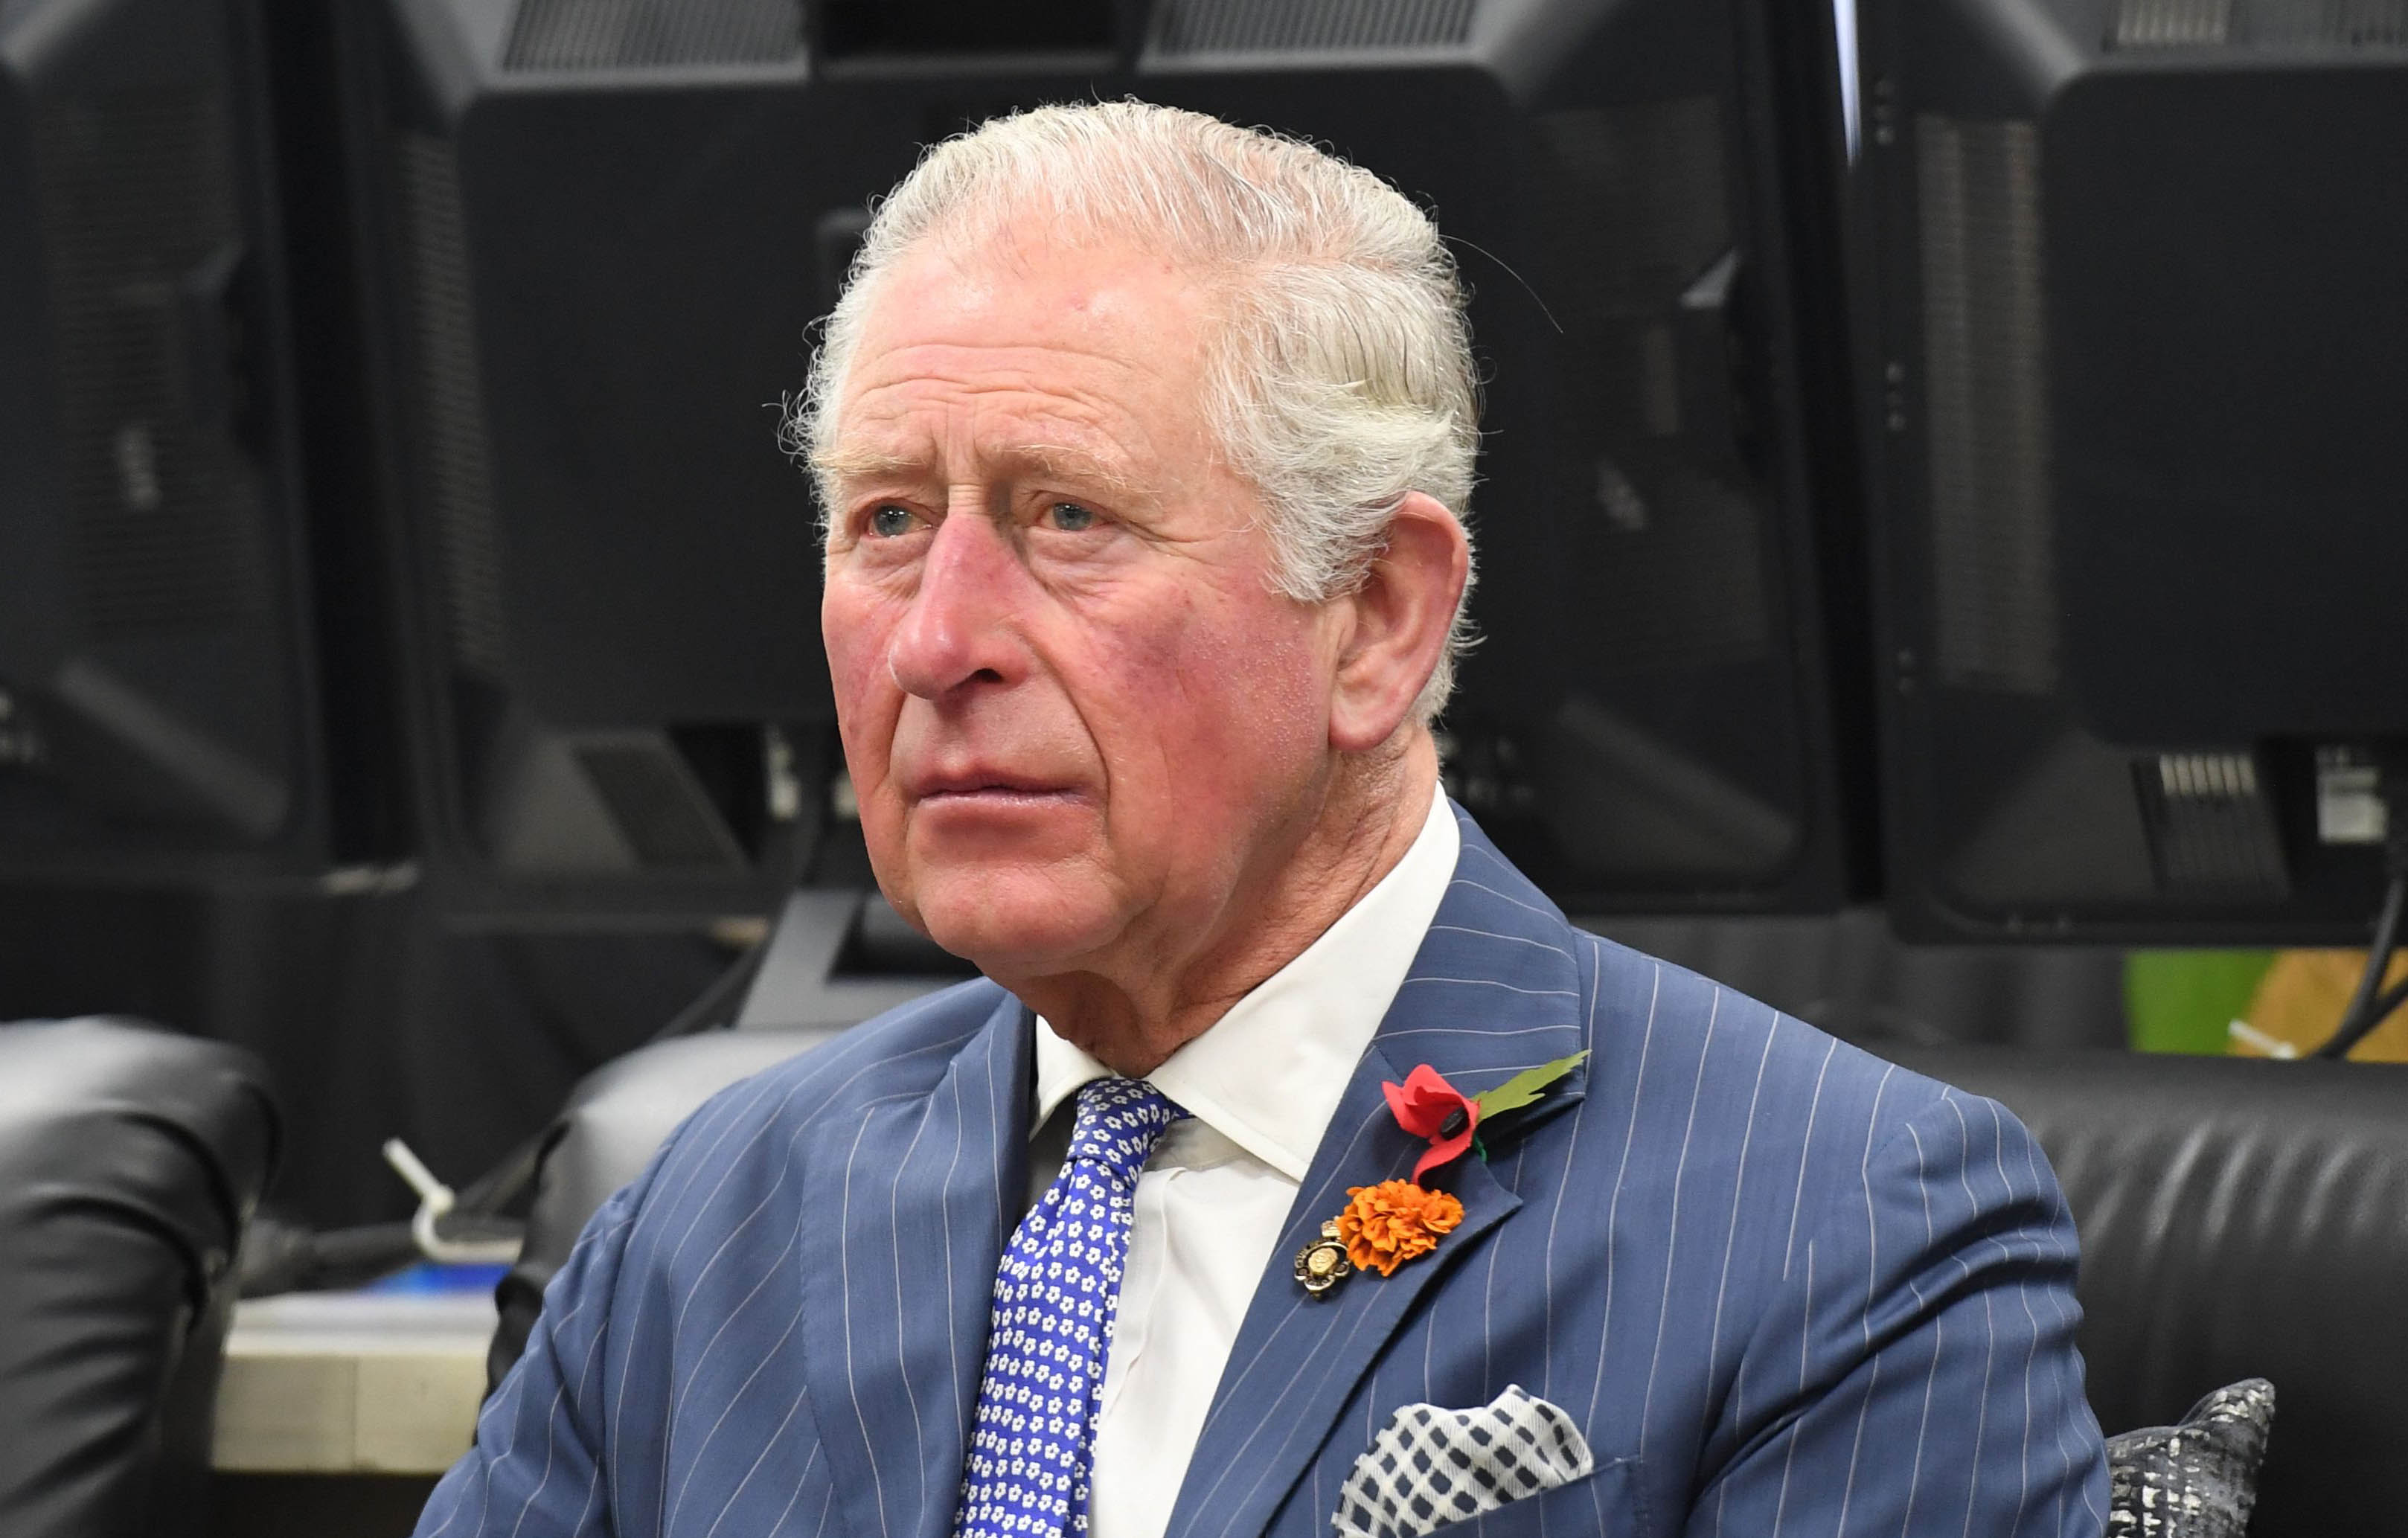 HRH The Prince of Wales: 'We urgently need a fresh, positive and practical vision for the countryside'